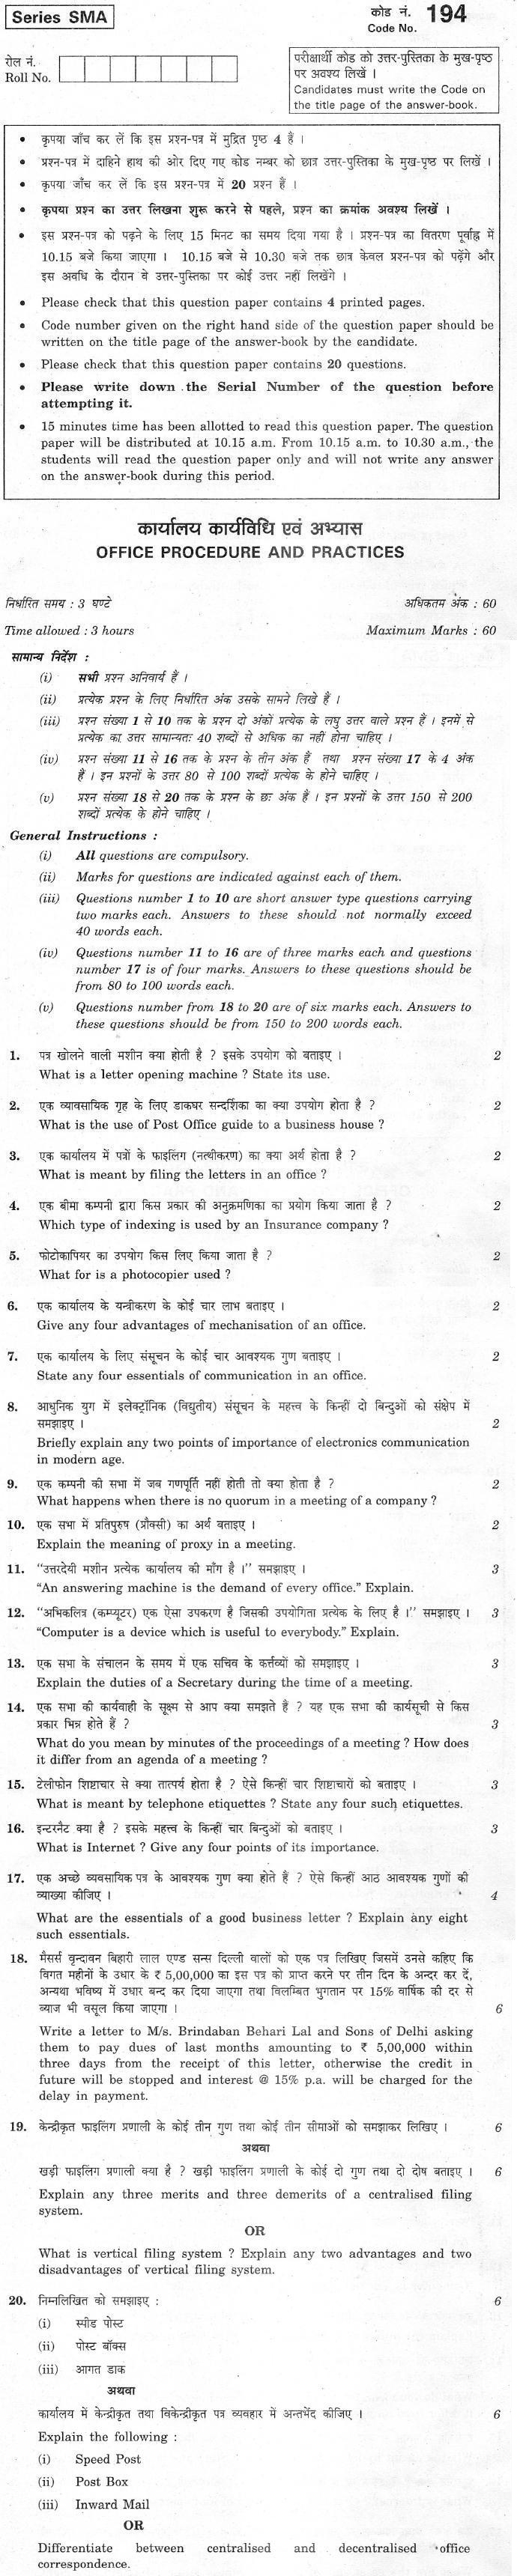 CBSE Class XII Previous Year Question Paper 2012 Office Procedure and Practices